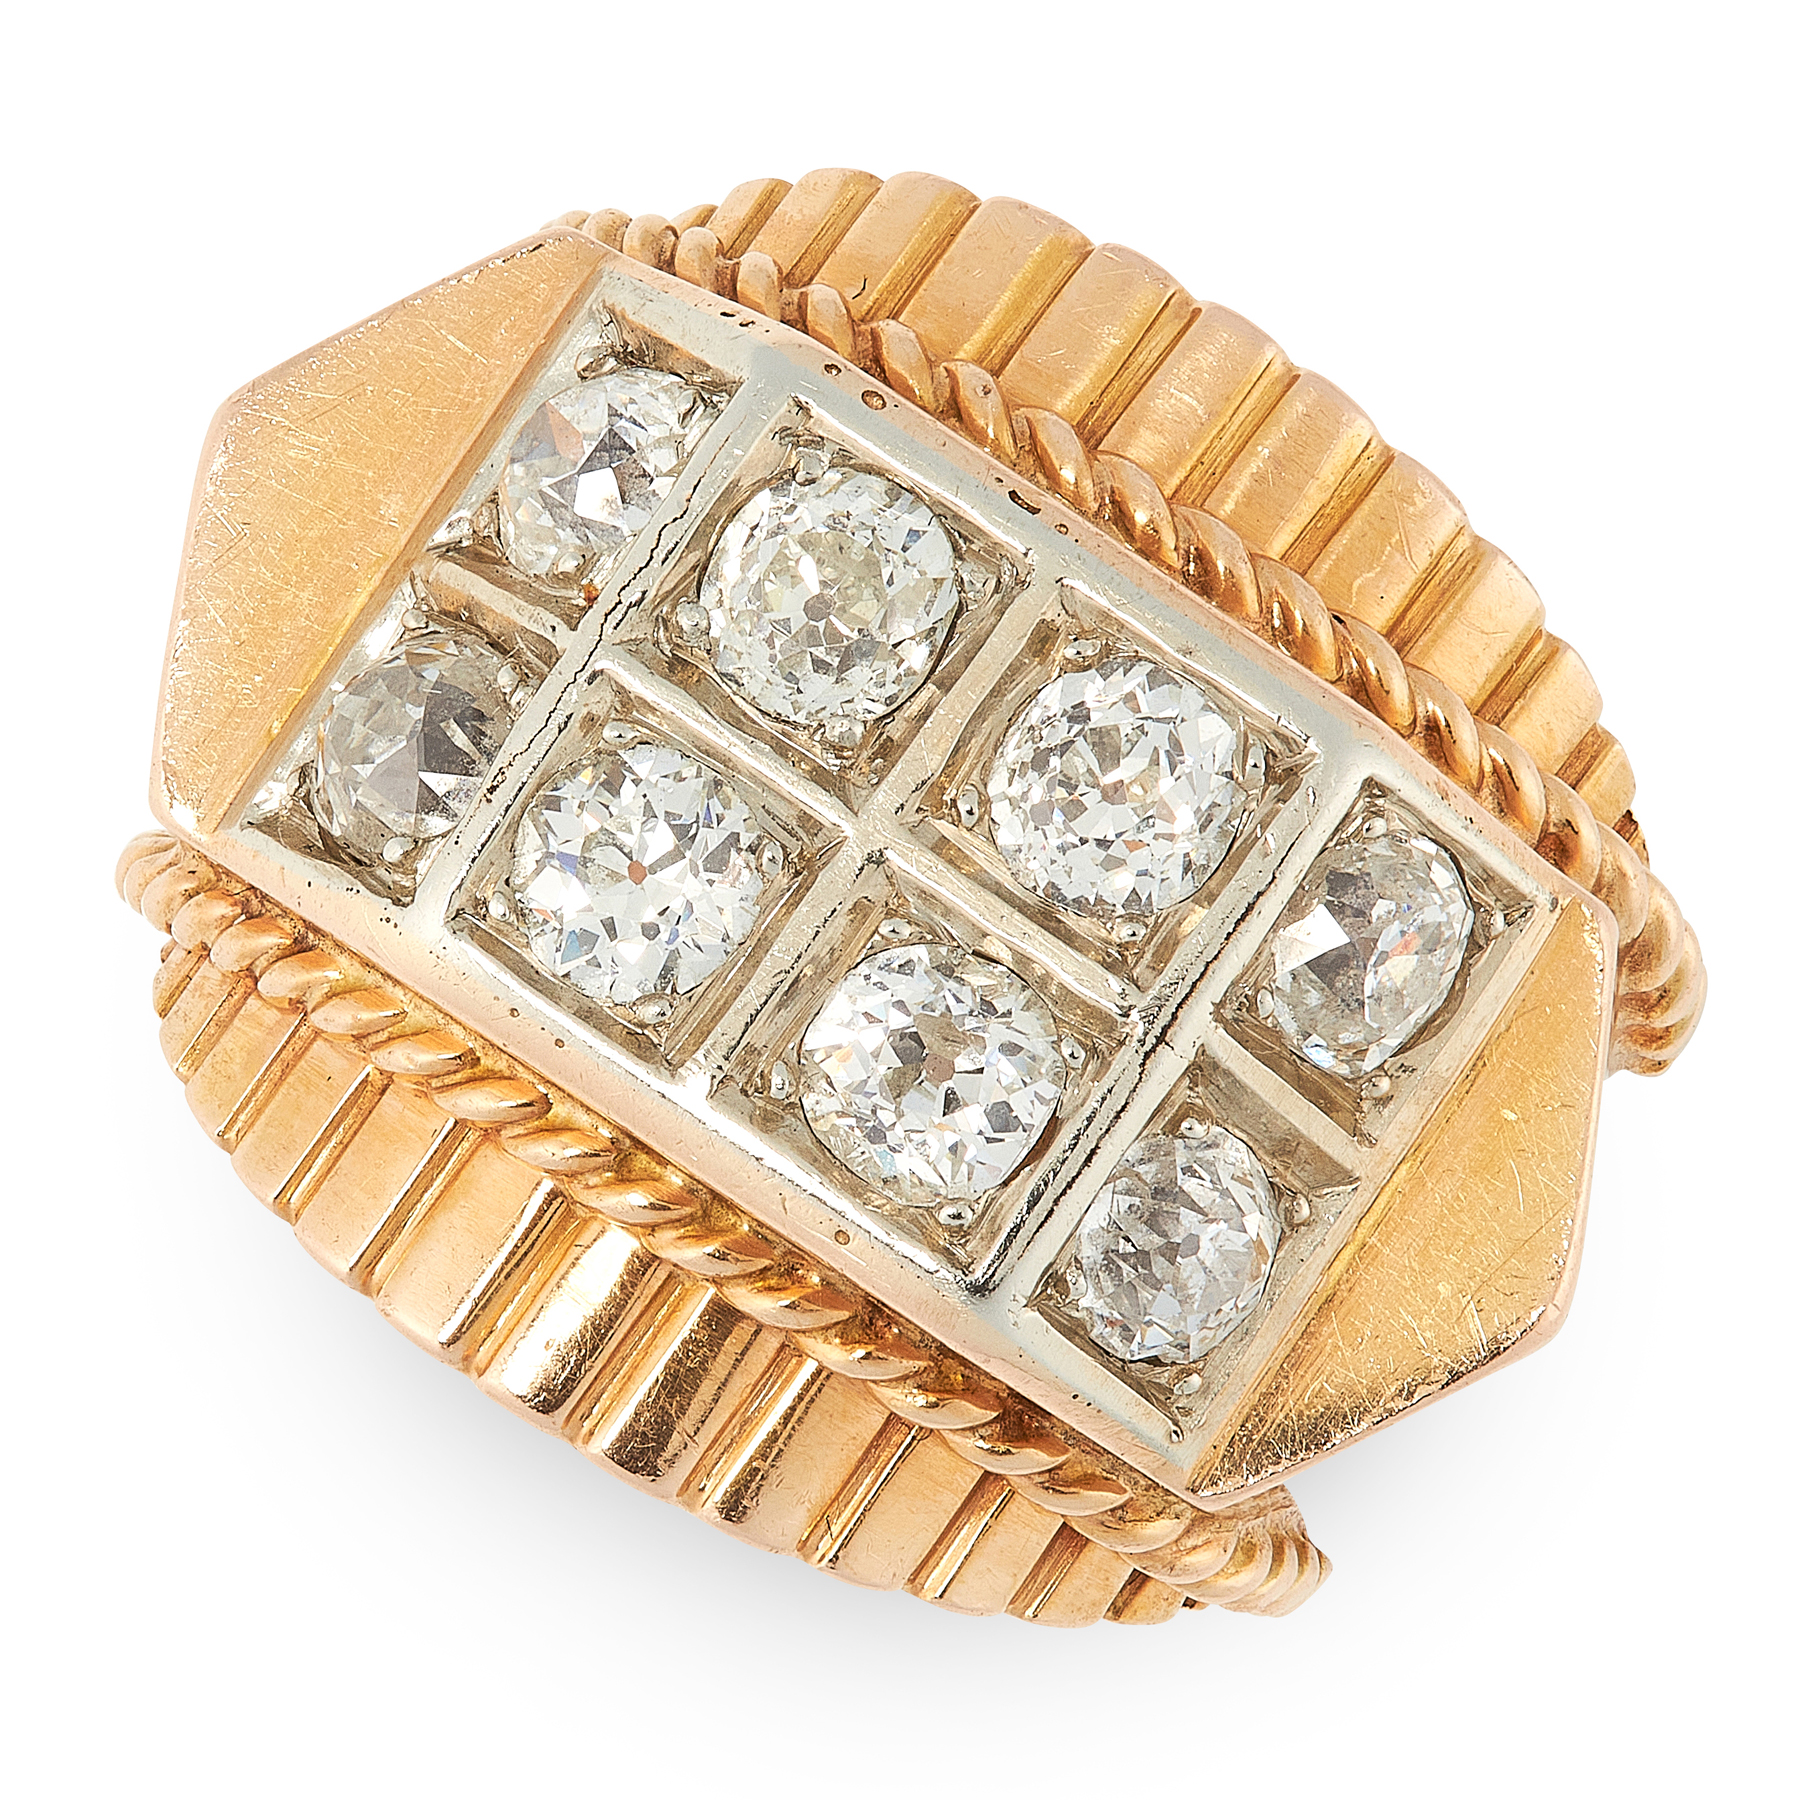 A RETRO DIAMOND BOMBE DRESS RING, 1940s in 18ct yellow gold, the face set with eight old cut